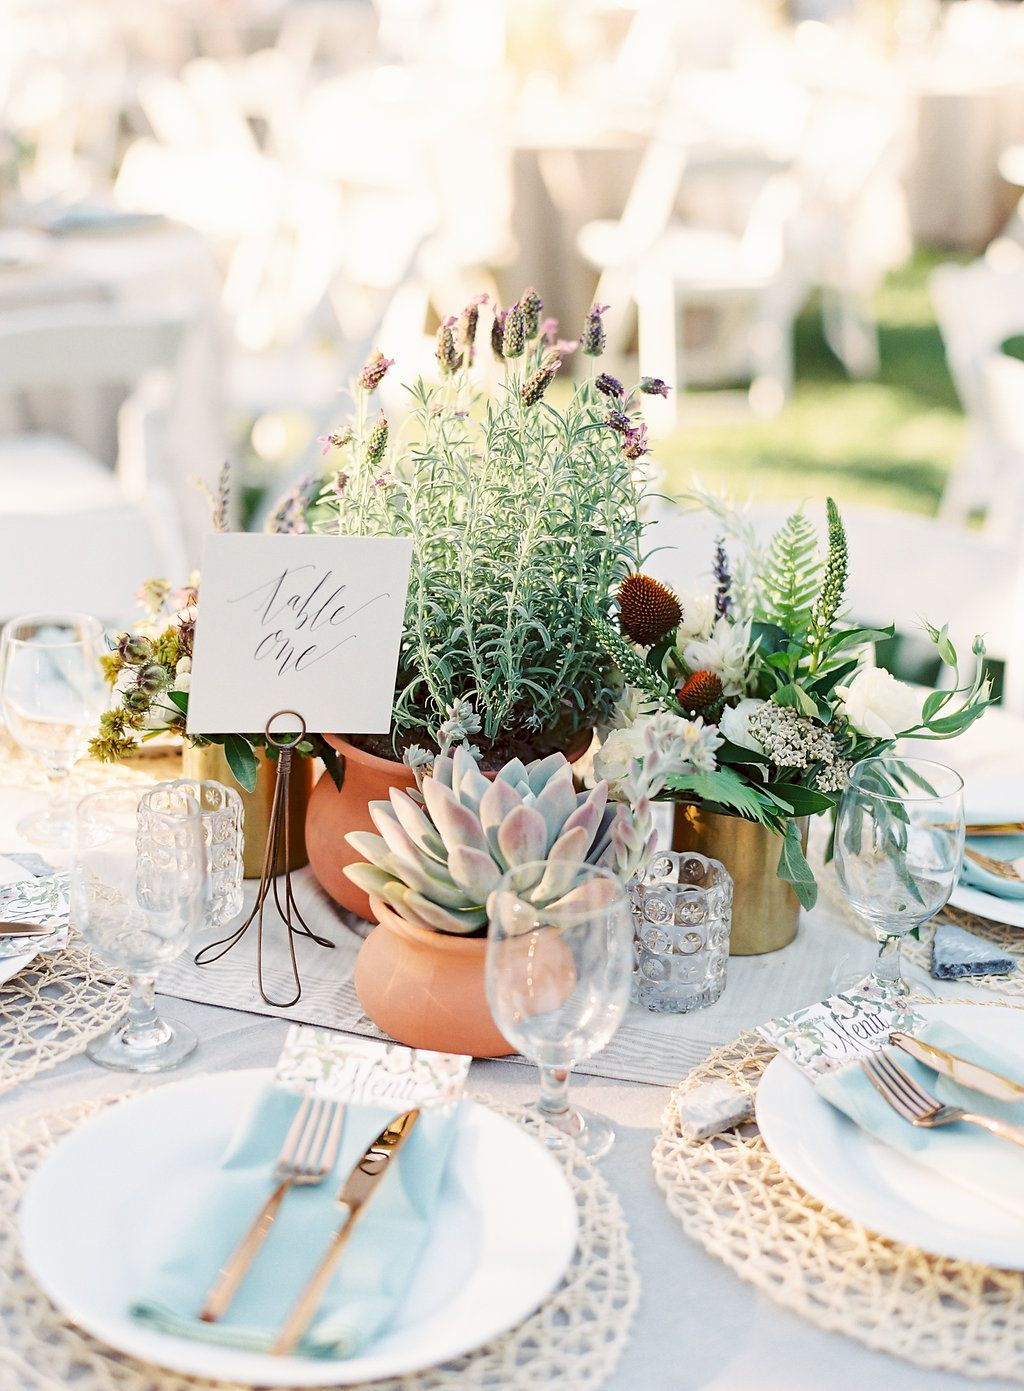 Wedding decoration ideas simple   Simple Greenery Wedding Centerpieces Decor Ideas  Wedding